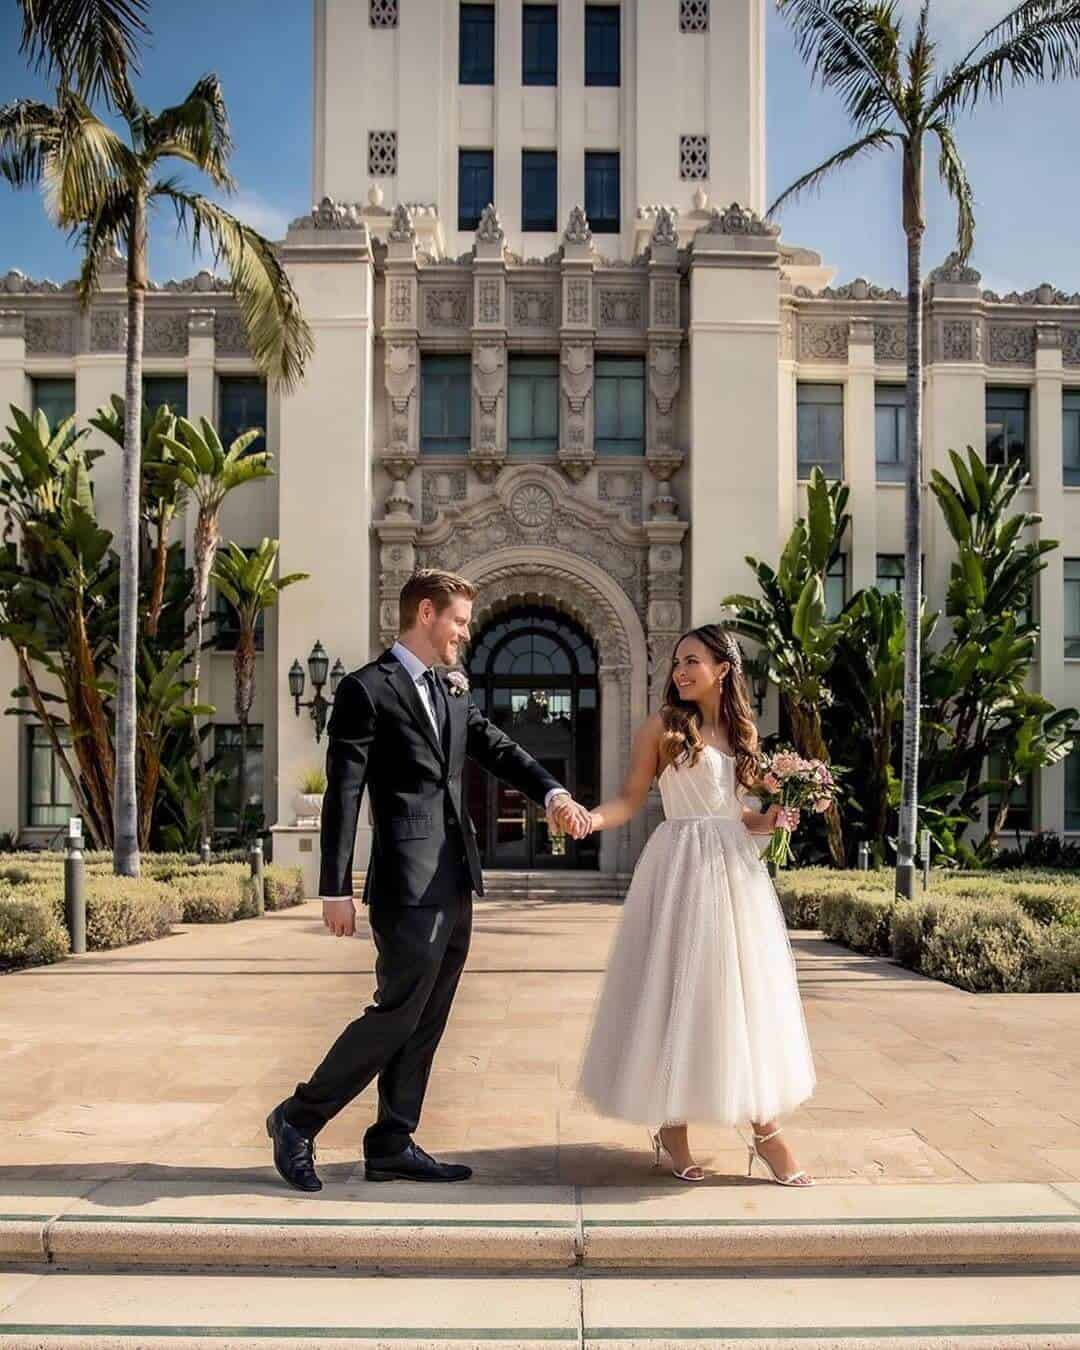 Elopement Wedding Dresses Casual Simple Romantic Beverly Hills Courthouse Melanee Shale Wolfgang (1)